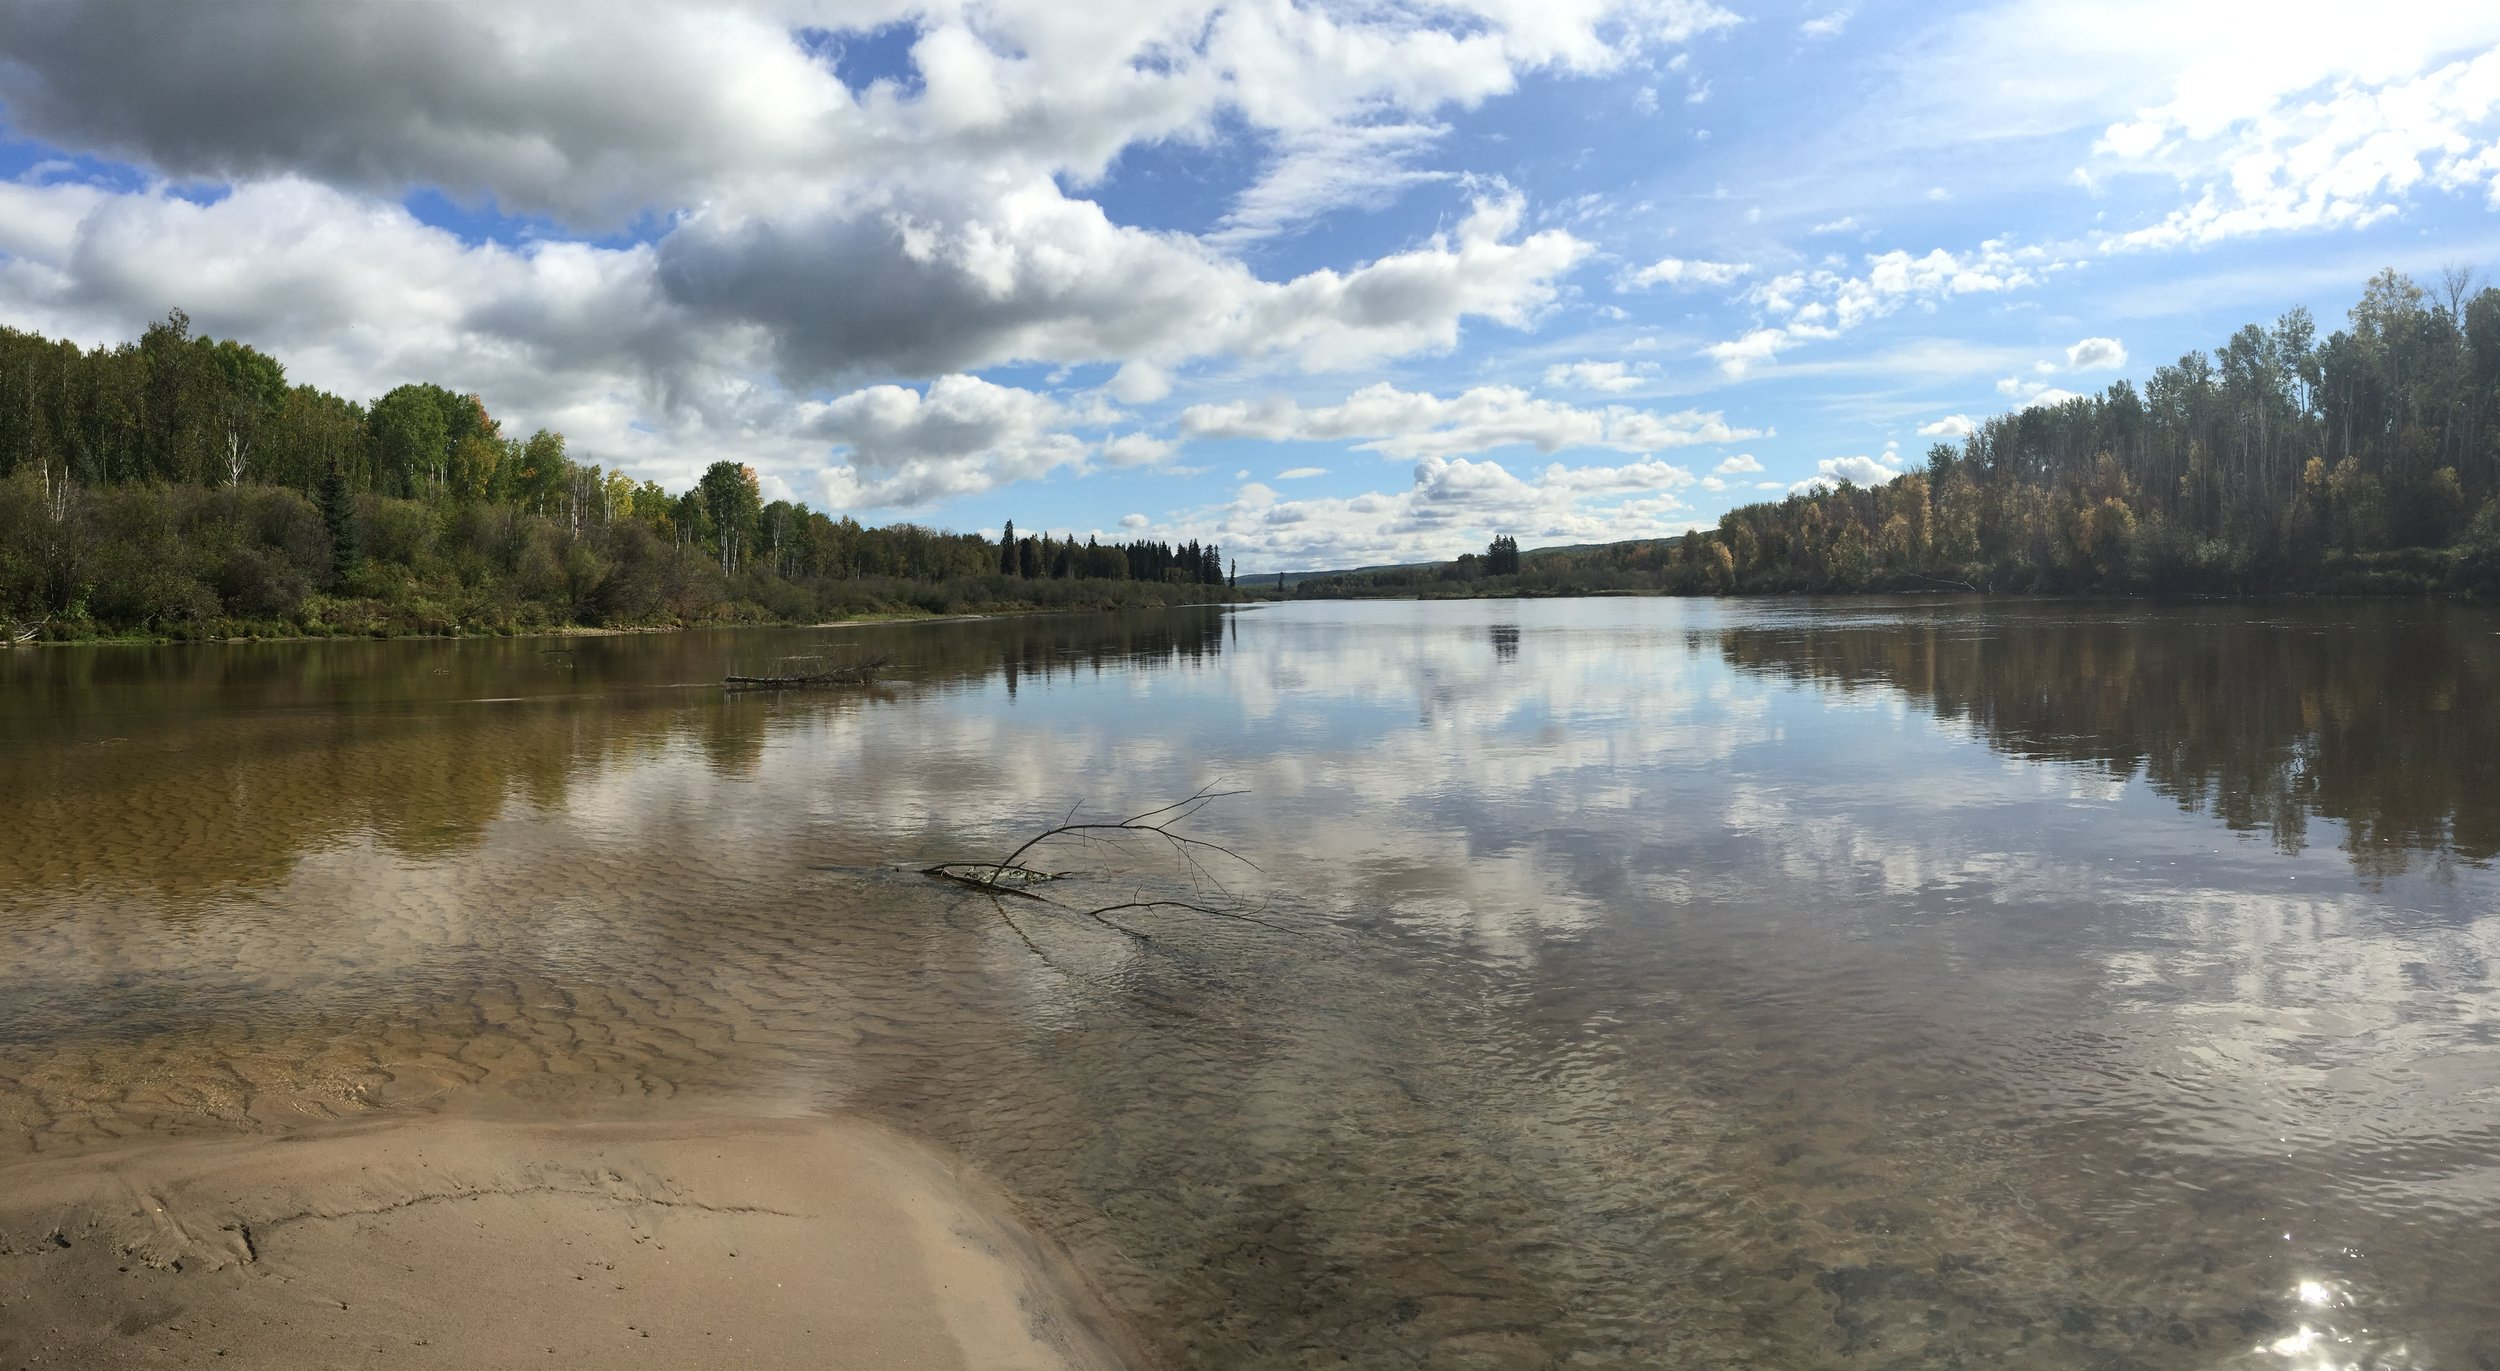 Clearwater River near Fort McMurray, Alberta